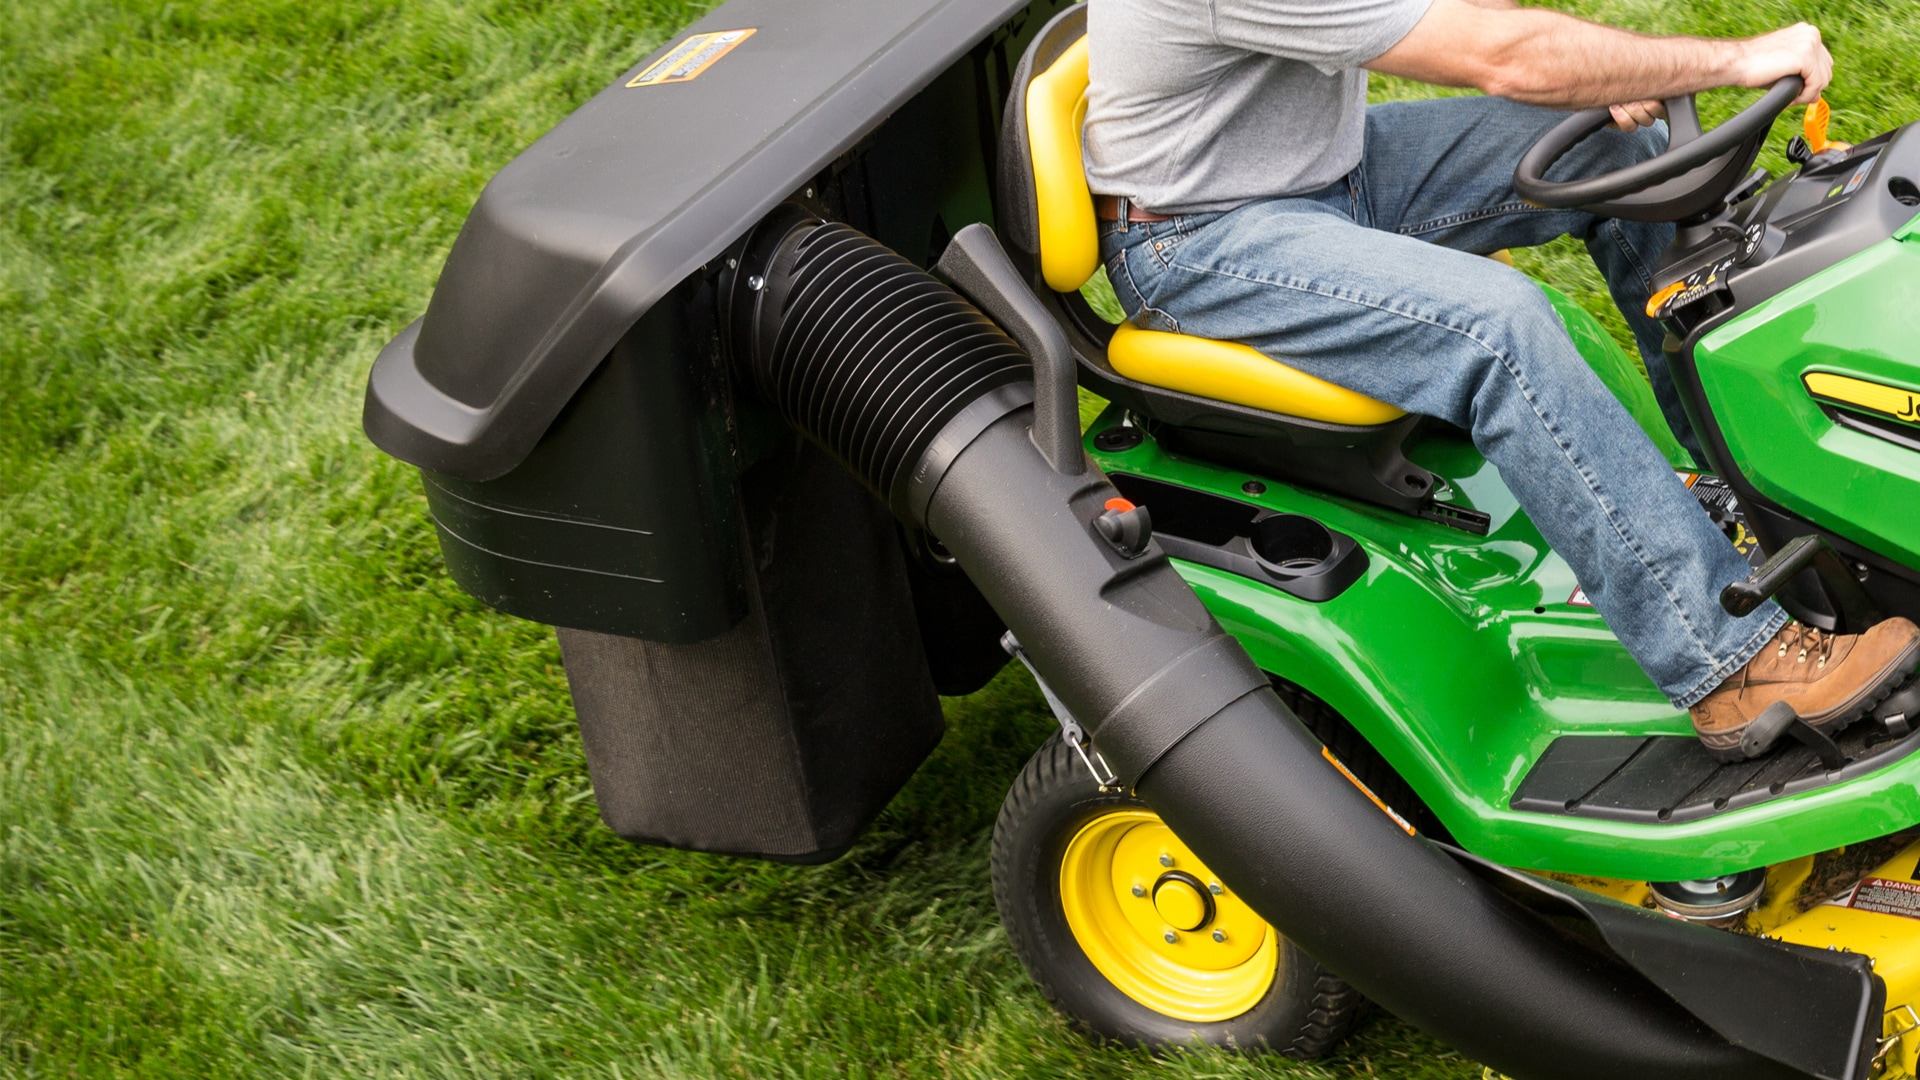 image of bagger system attached to lawn tractor